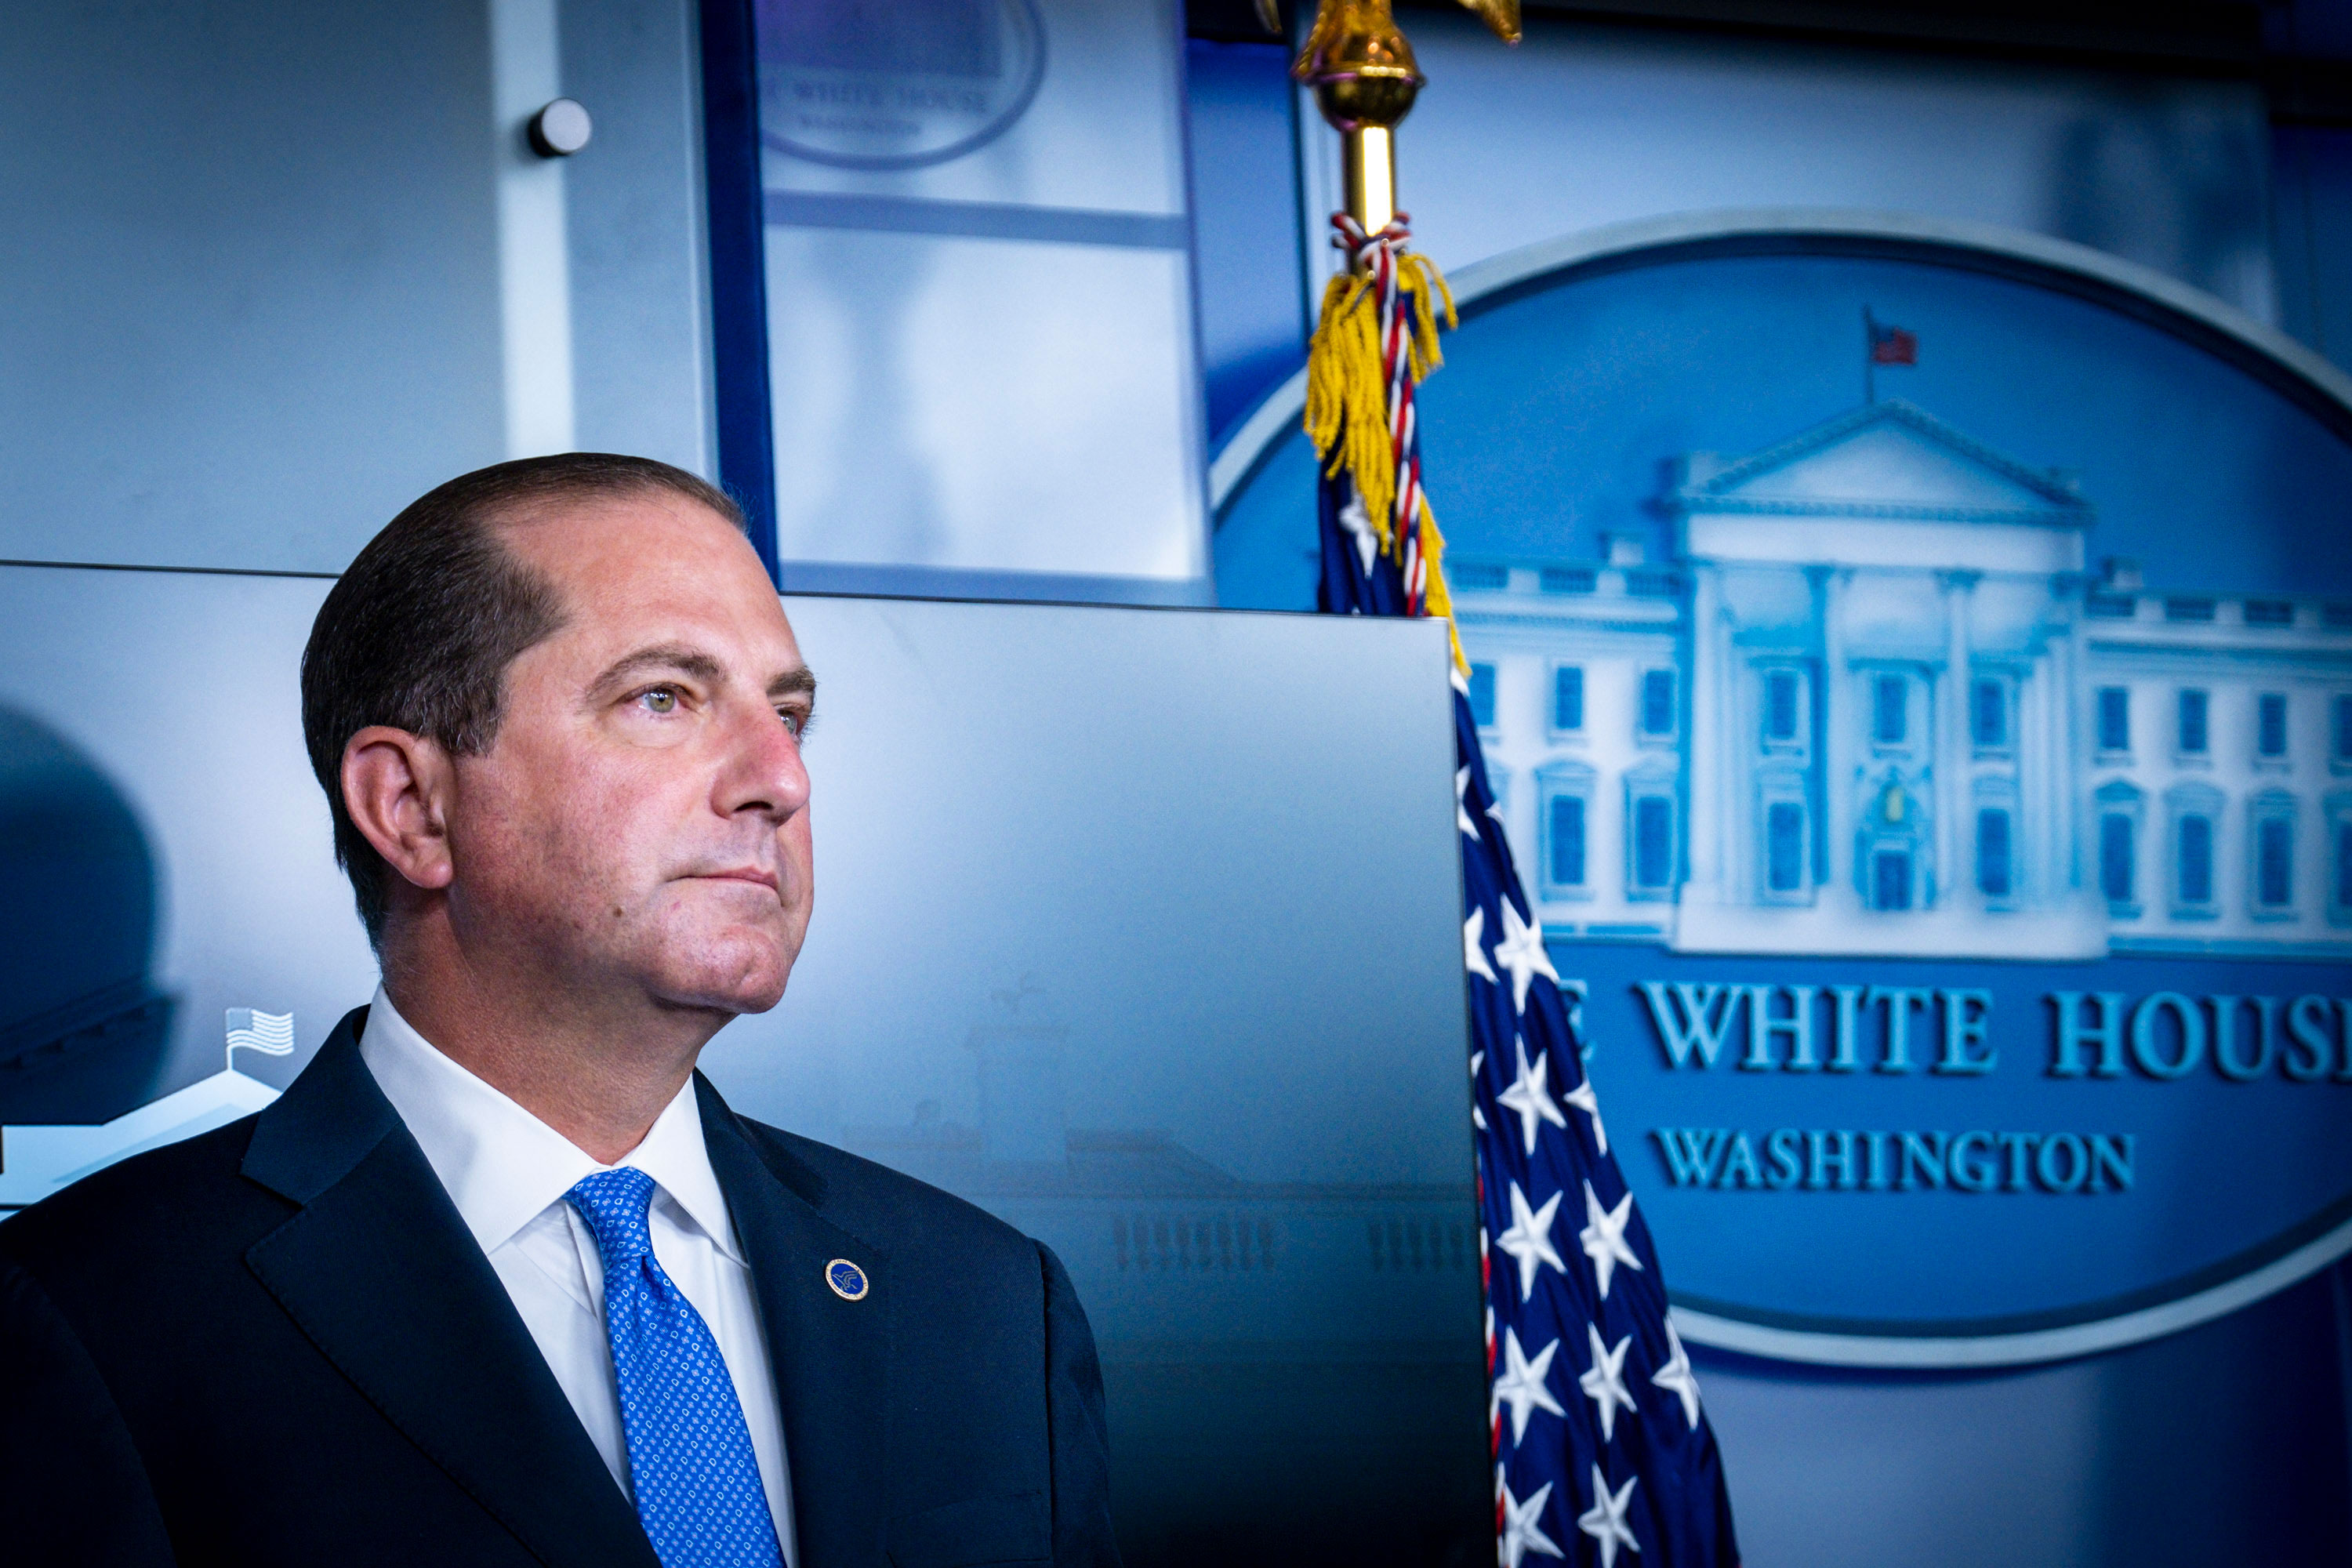 Alex Azar attends a press conference at the White House on August 23.